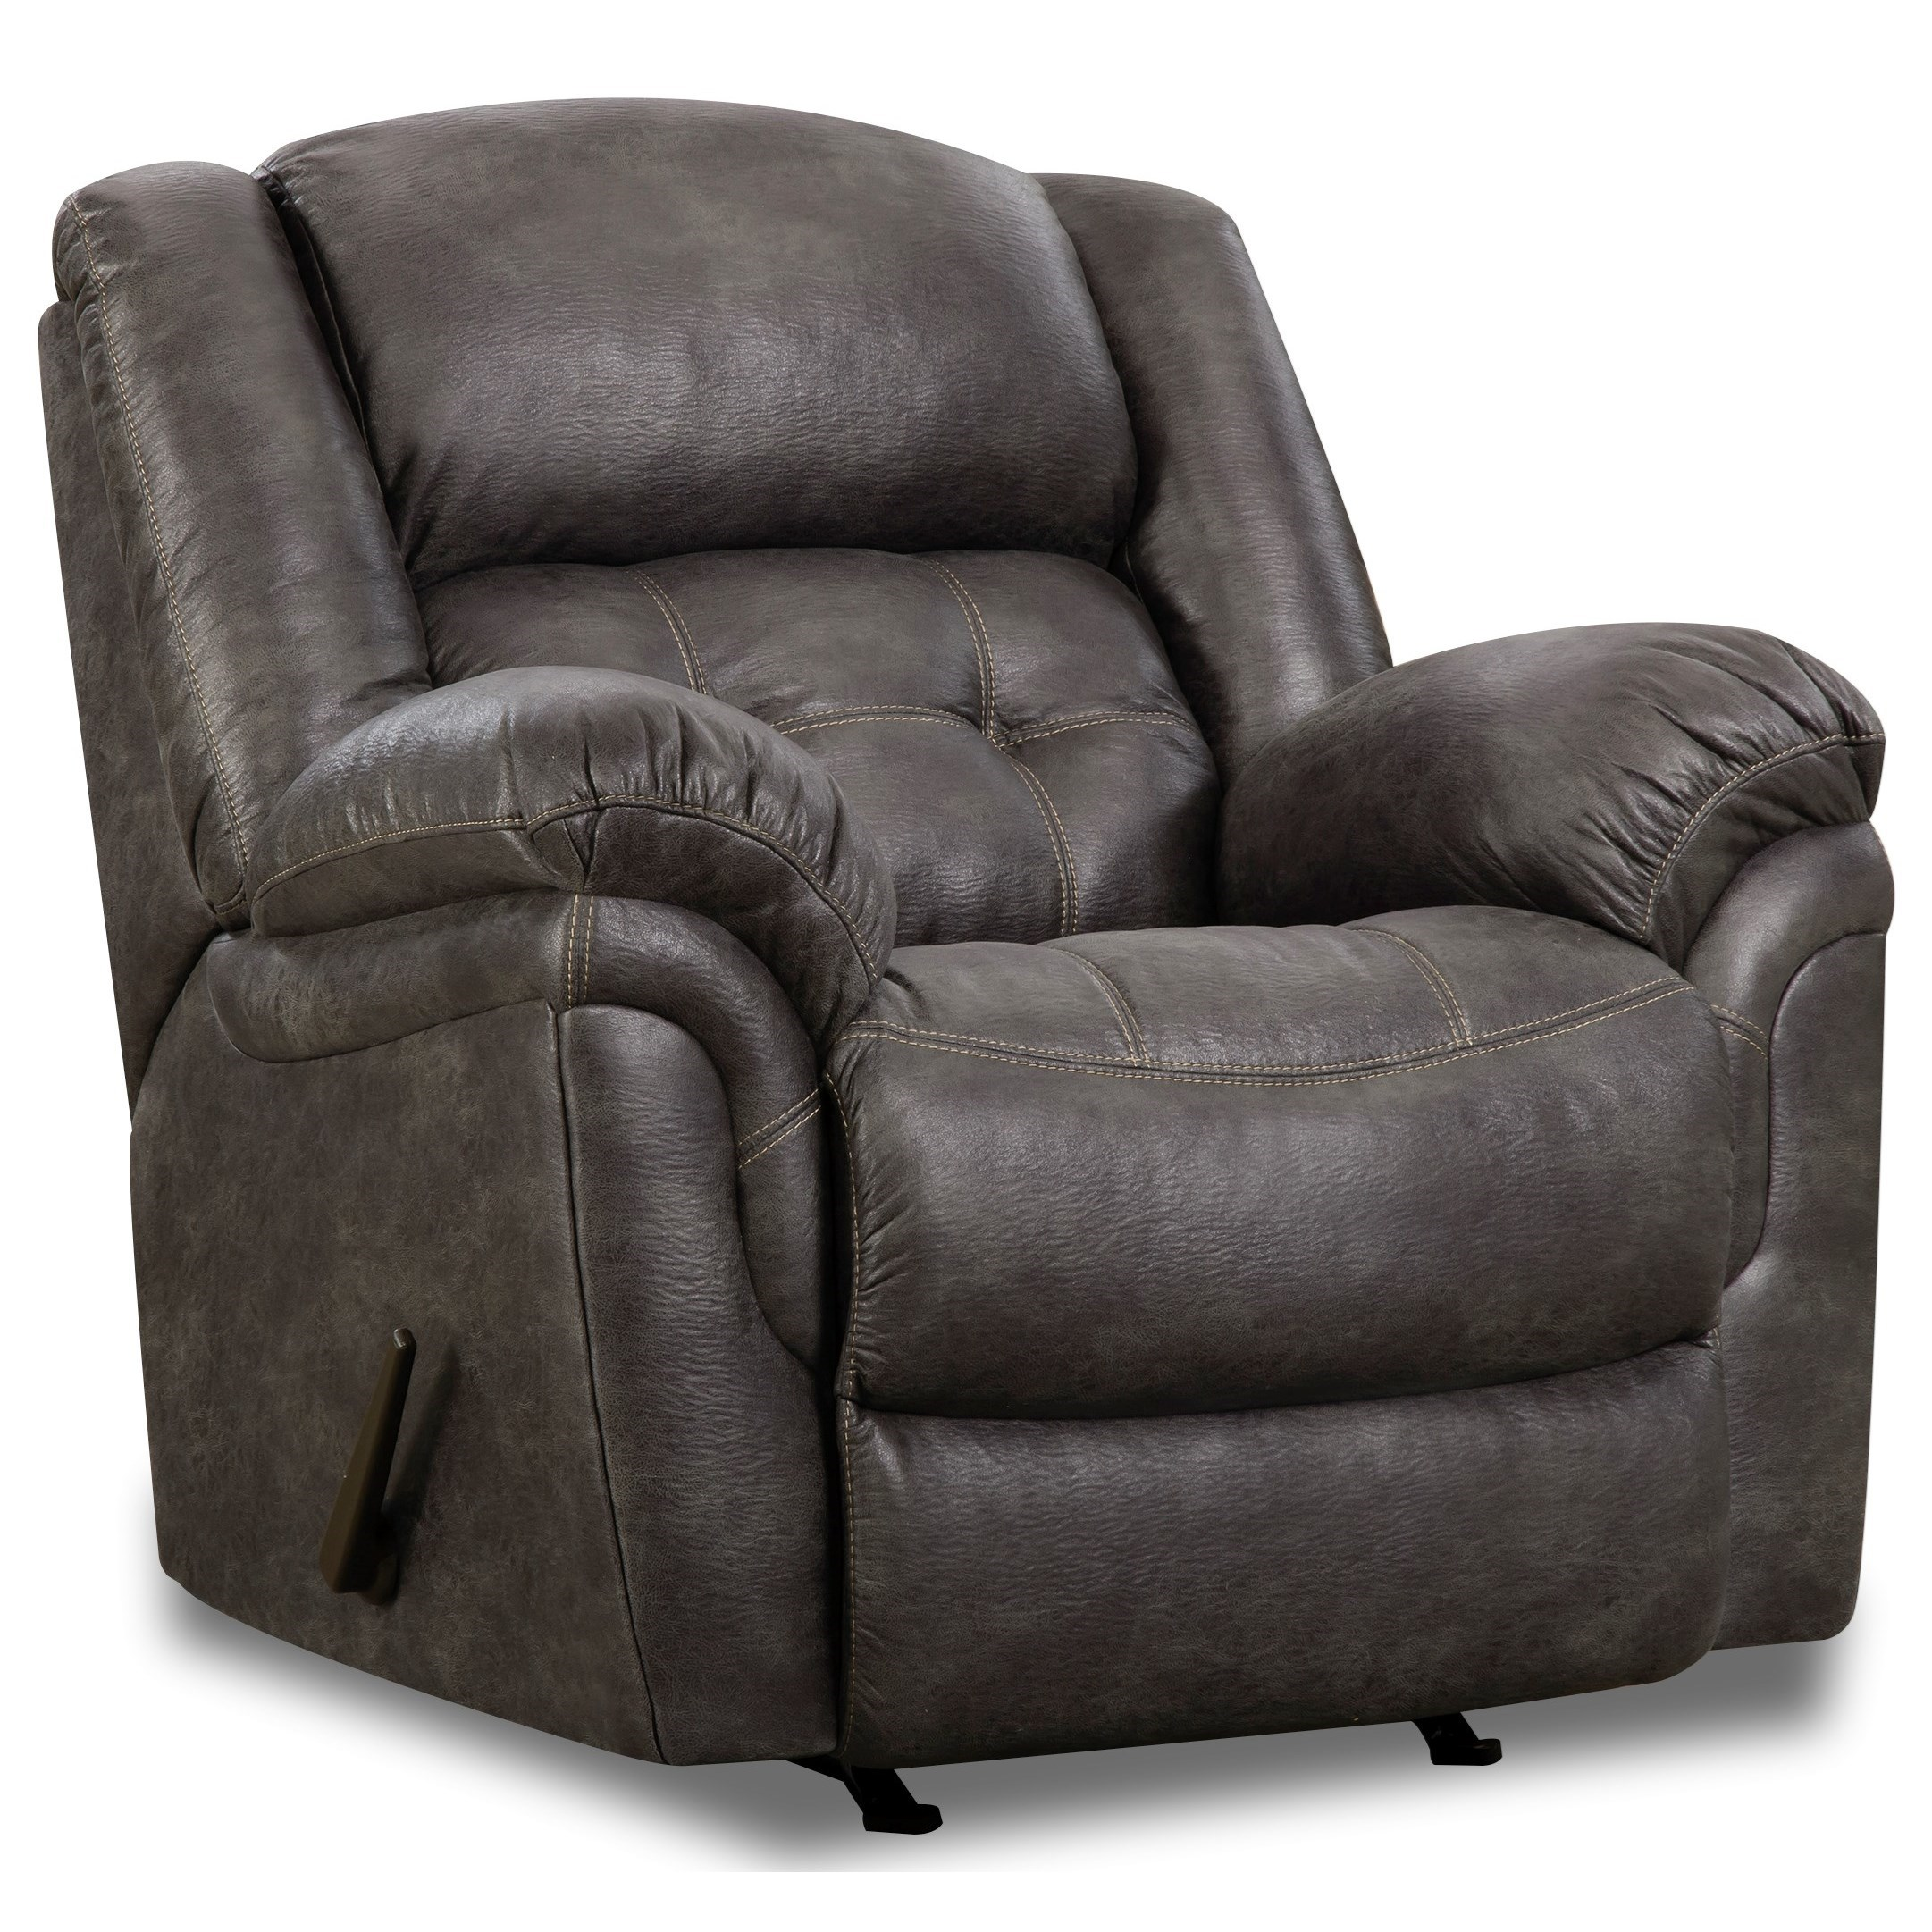 129 Power Rocker Recliner by HomeStretch at Adcock Furniture